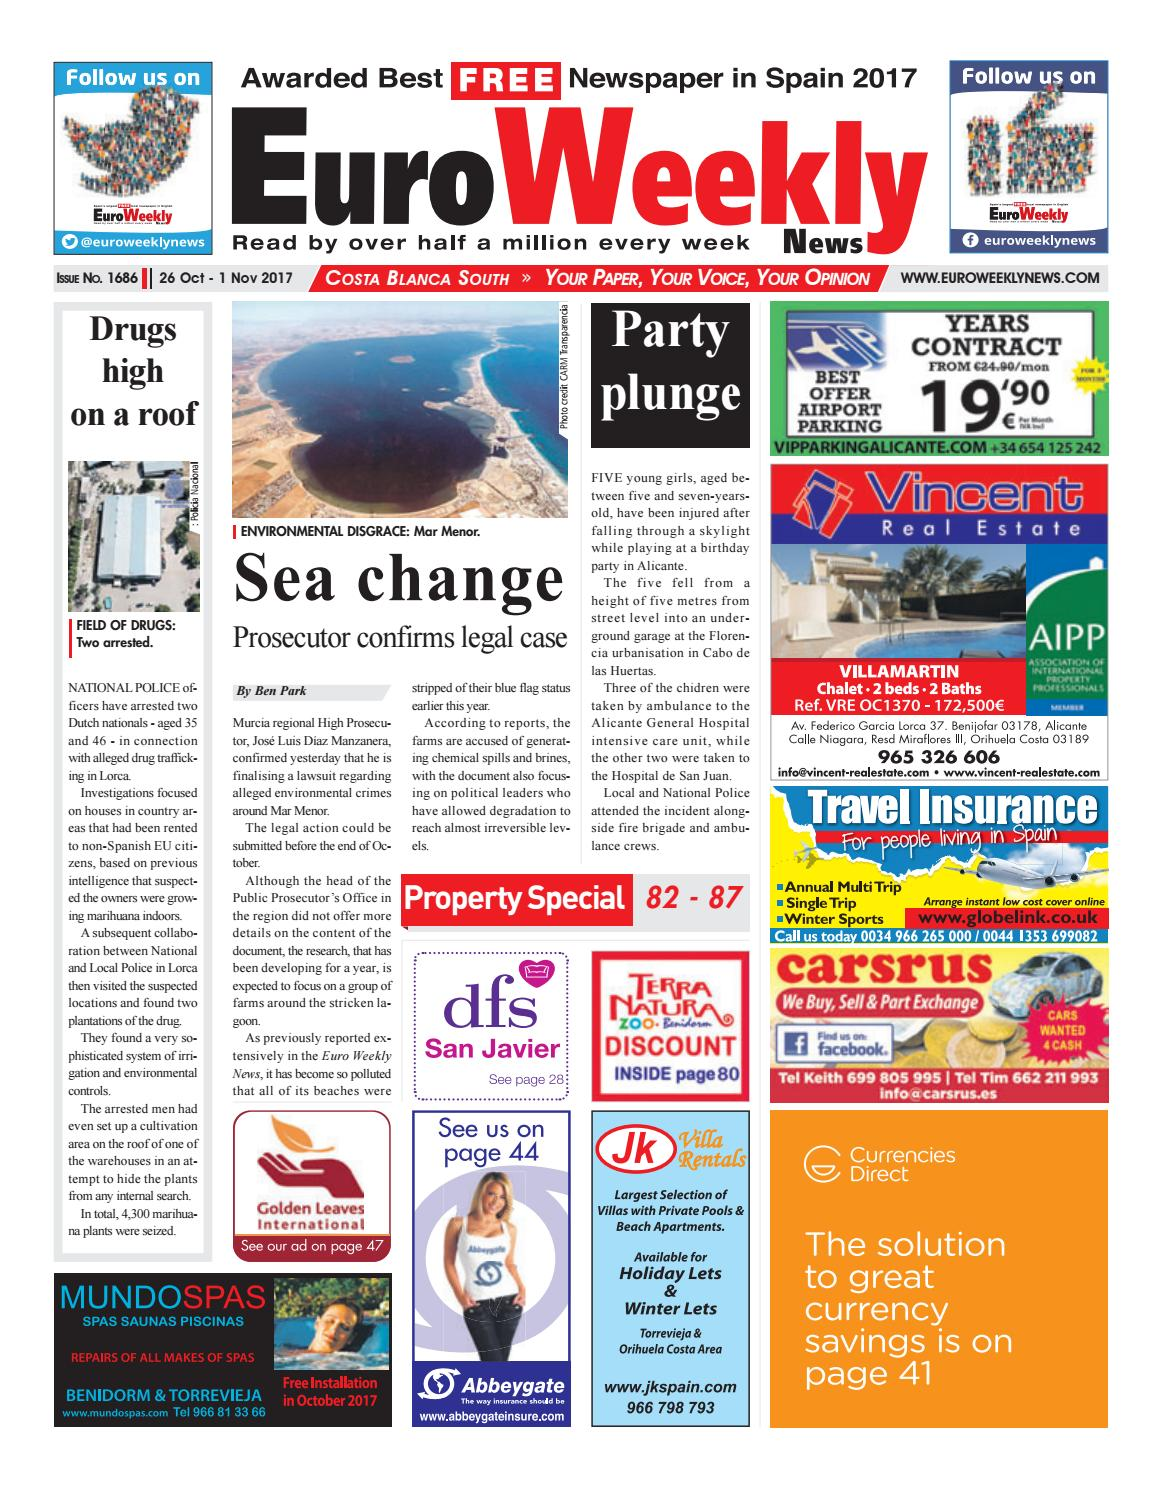 Euro Weekly News - Costa Blanca South 26 October – 1